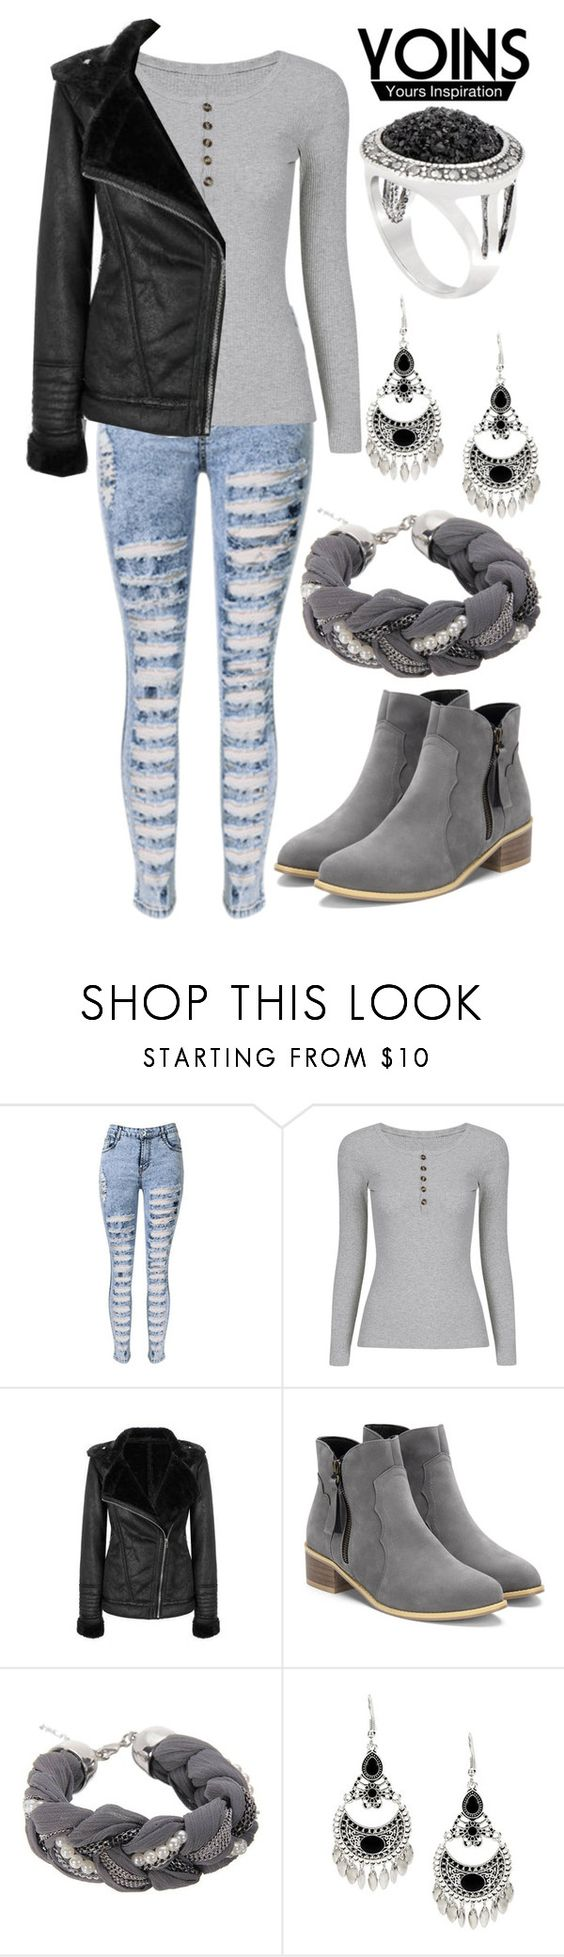 """""""YOINS"""" by deedee-pekarik ❤ liked on Polyvore featuring yoins, yoinscollection and loveyoins"""